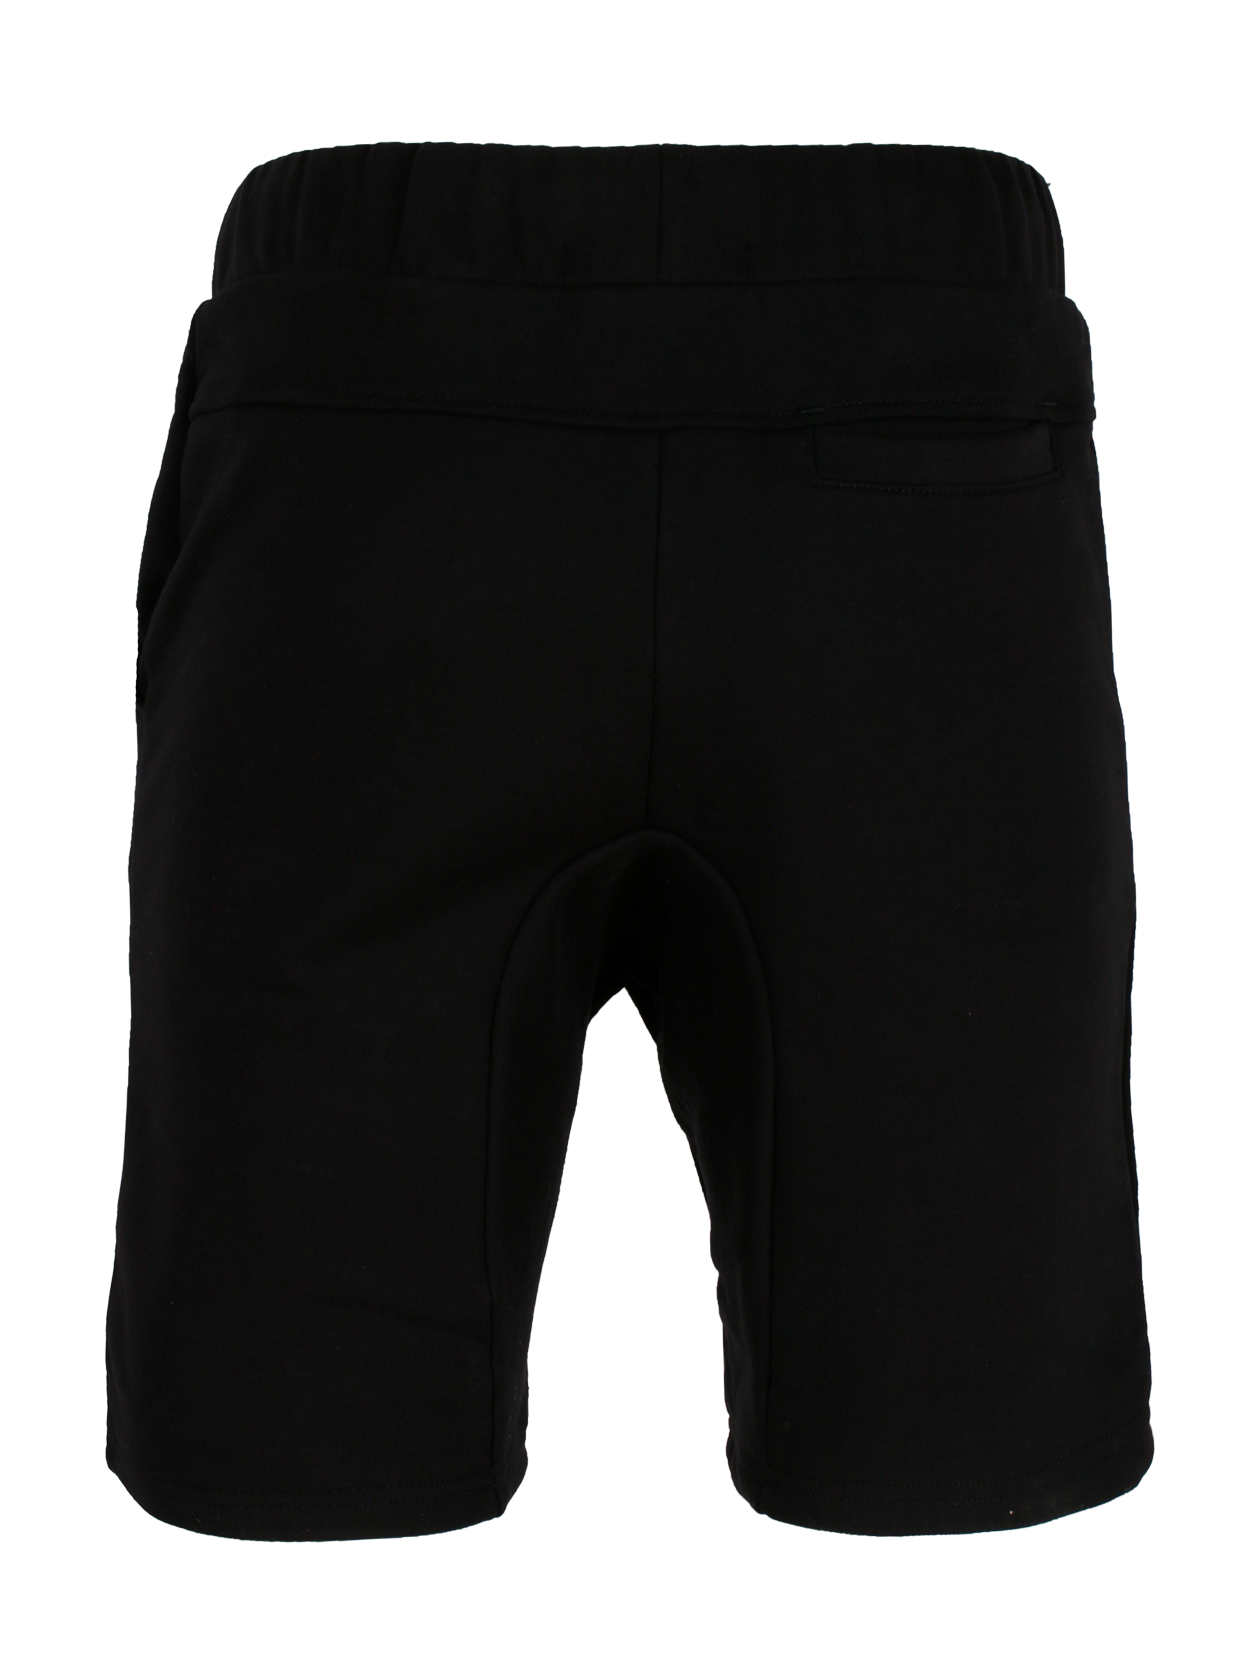 Mens shorts DOUBLE CROWN от BlackStarWear INT